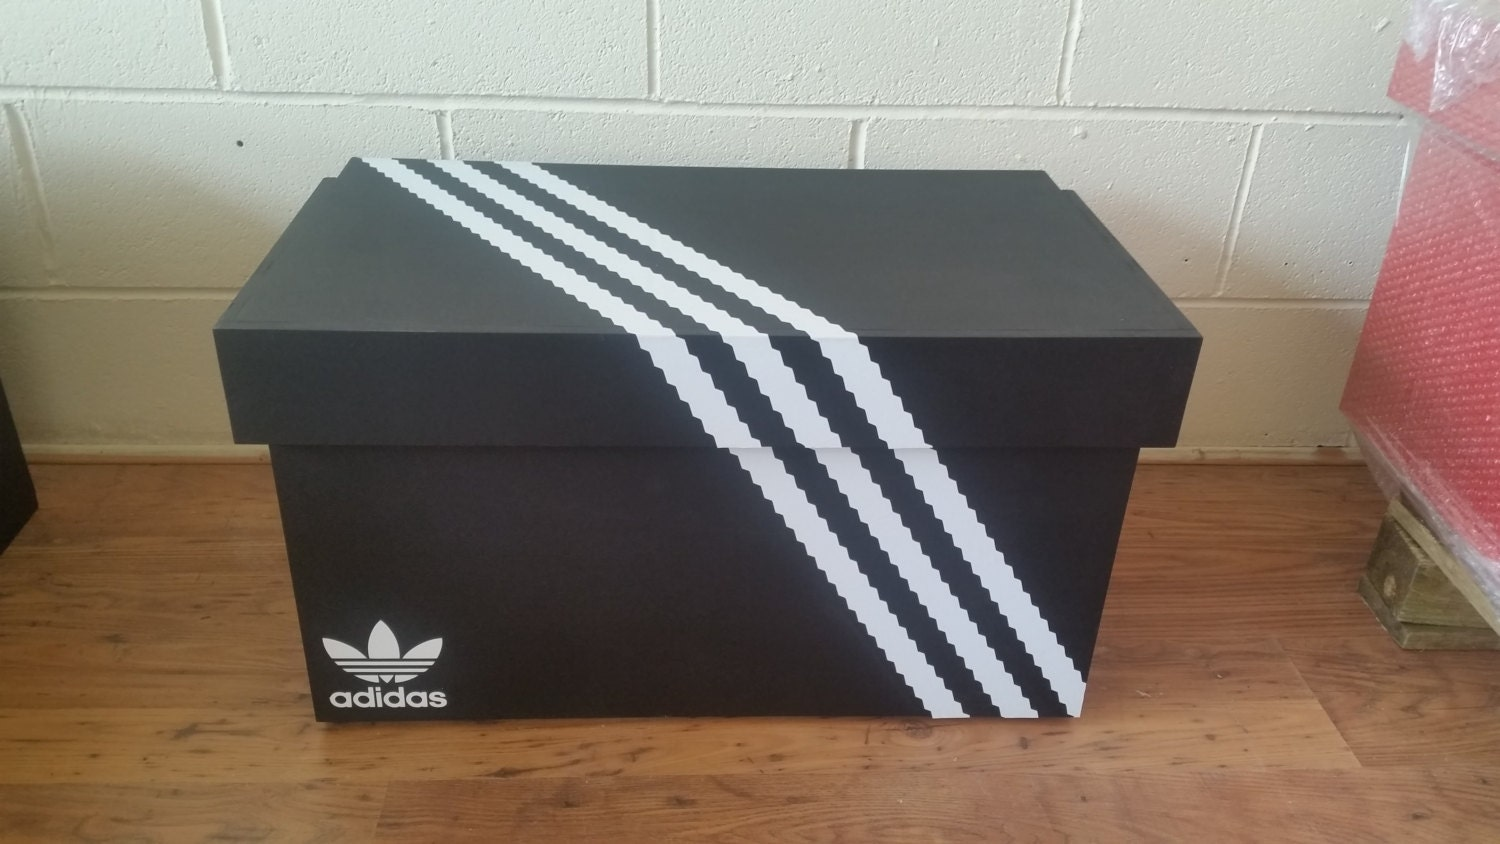 XL Trainer Storage Box Adidas Giant Sneaker Box (fits 68no pairs of trainers)